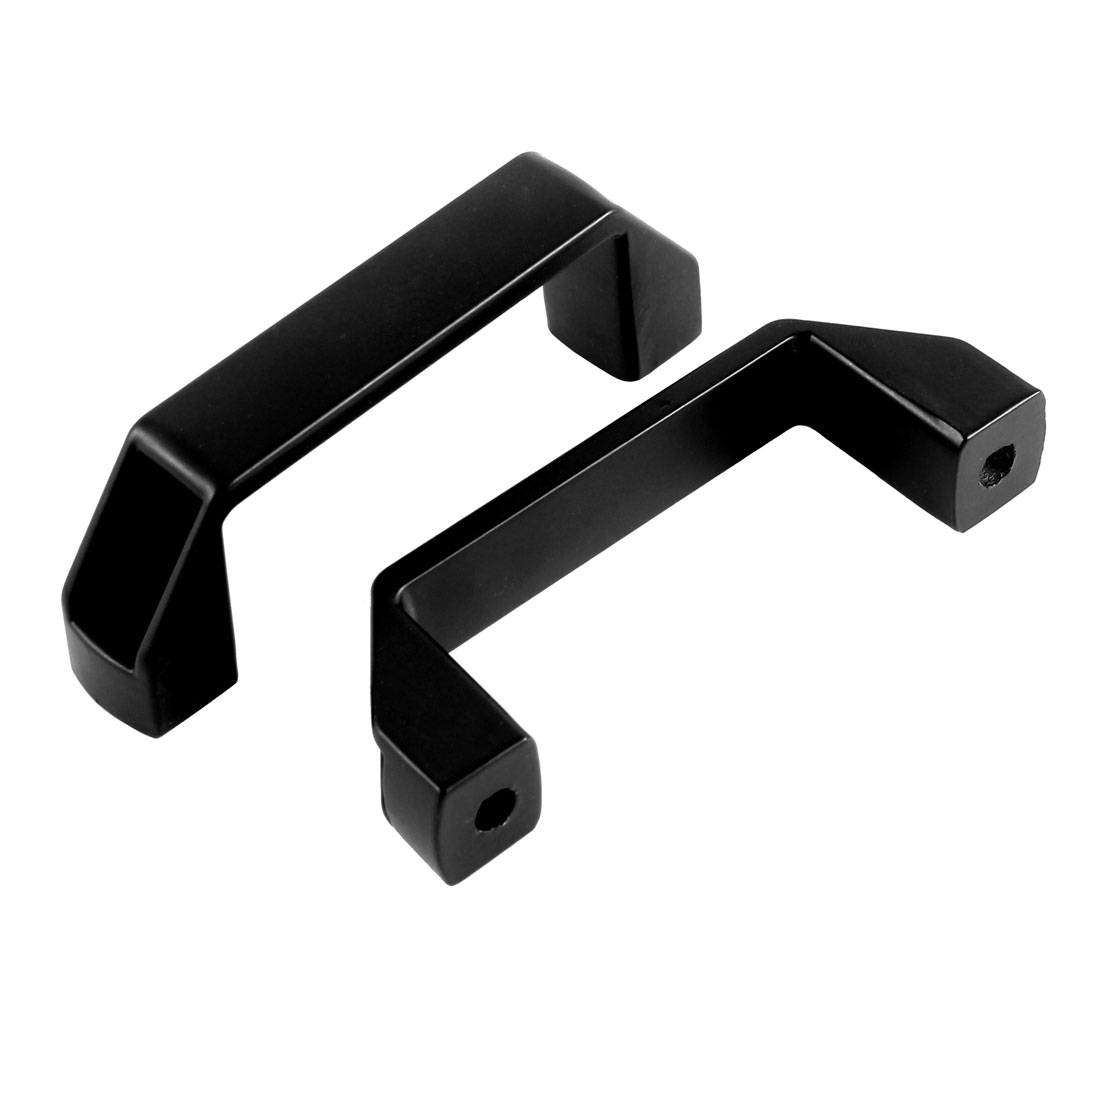 "Black Metal Rectangle Recessed Flush Pull Handle Drawer Cabinet Knob Grip 4.4"" 11cm Length 2pcs"